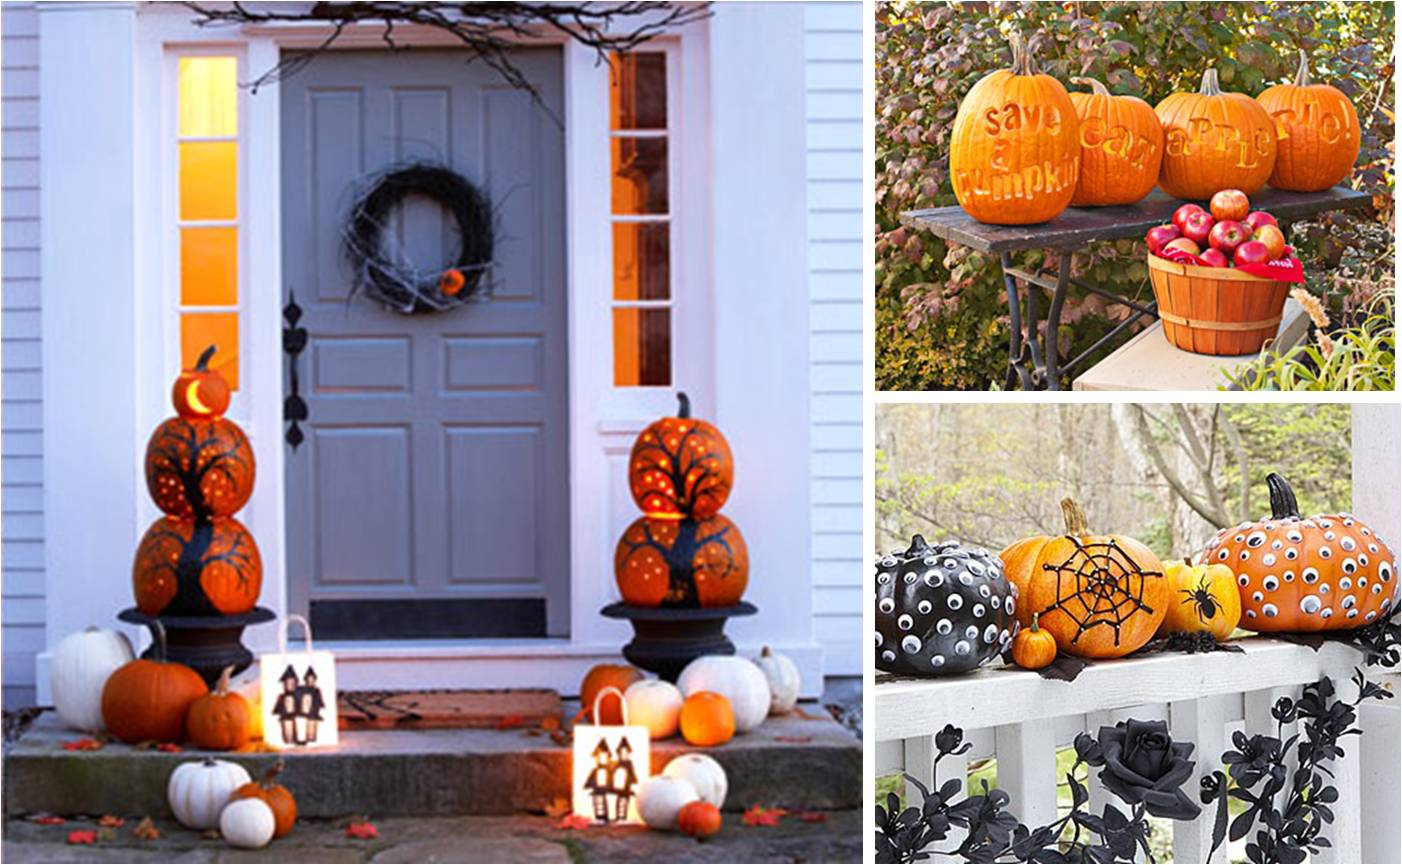 Calabaza Decorada Ideas Para Tu Noche De Halloween Speak Your Acts By